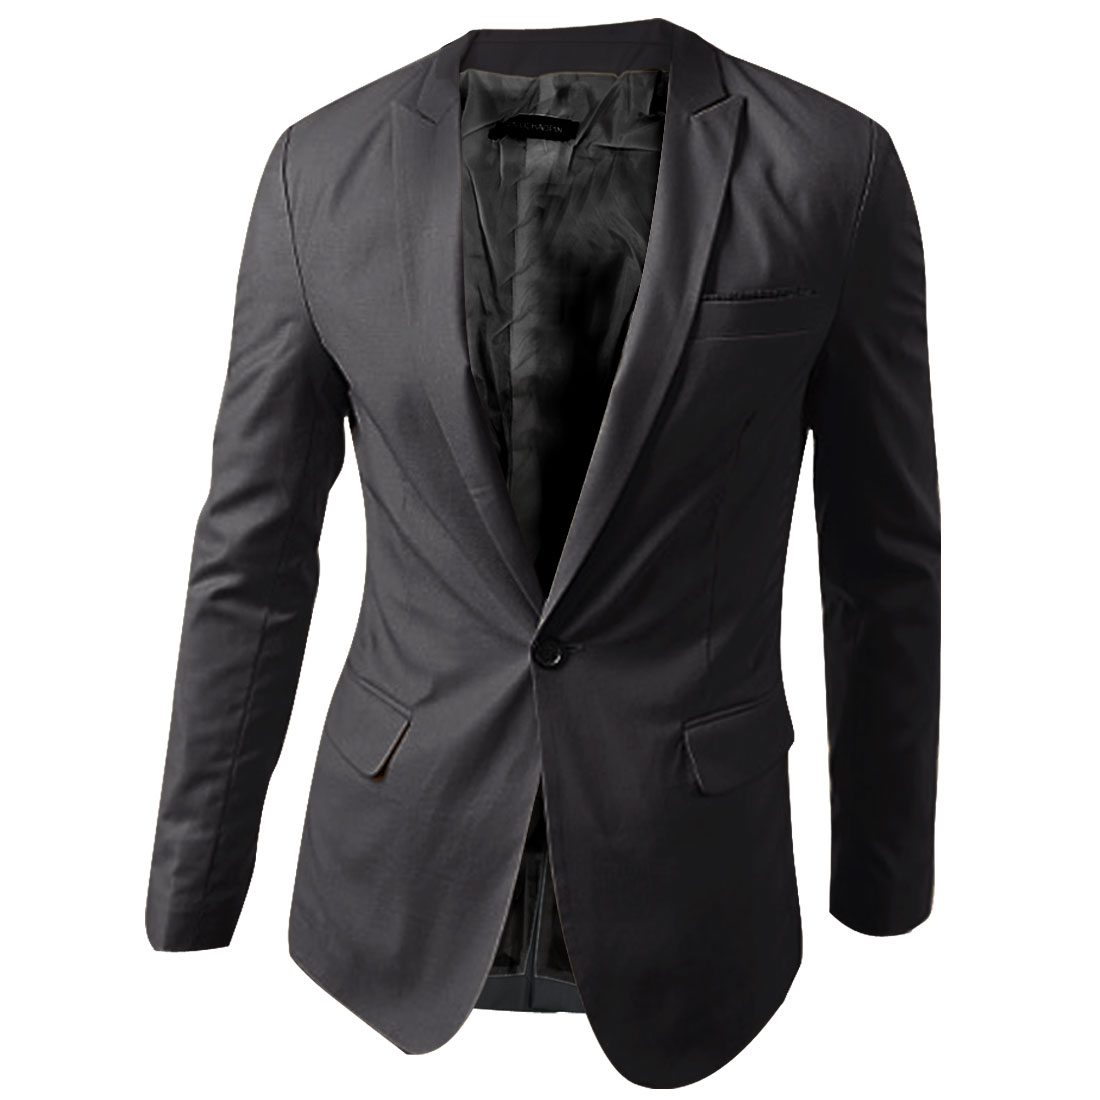 Chic Pure Dark Gray One-Button Front Split Back Detail Blazer for Man L